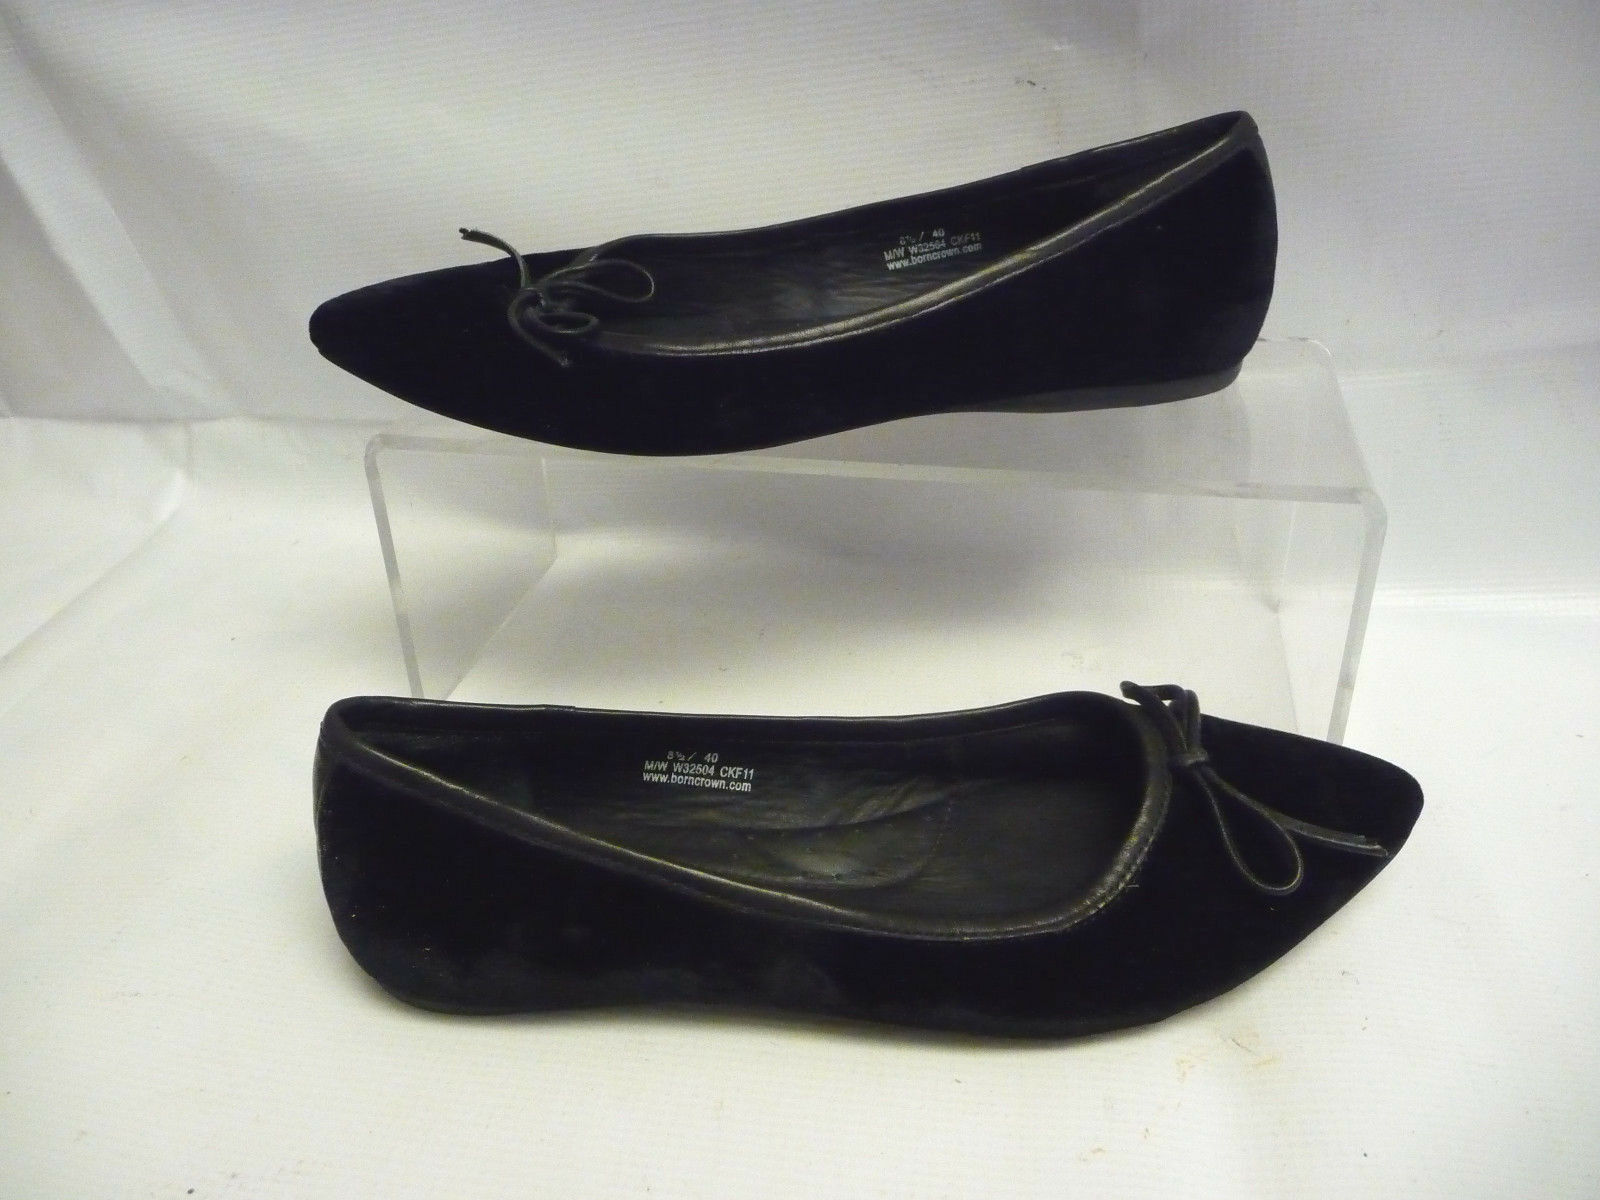 BORN CROWN Womens Flats Size 8.5 40 Black Suede Bow Leather Bow Suede Arch Support 866766